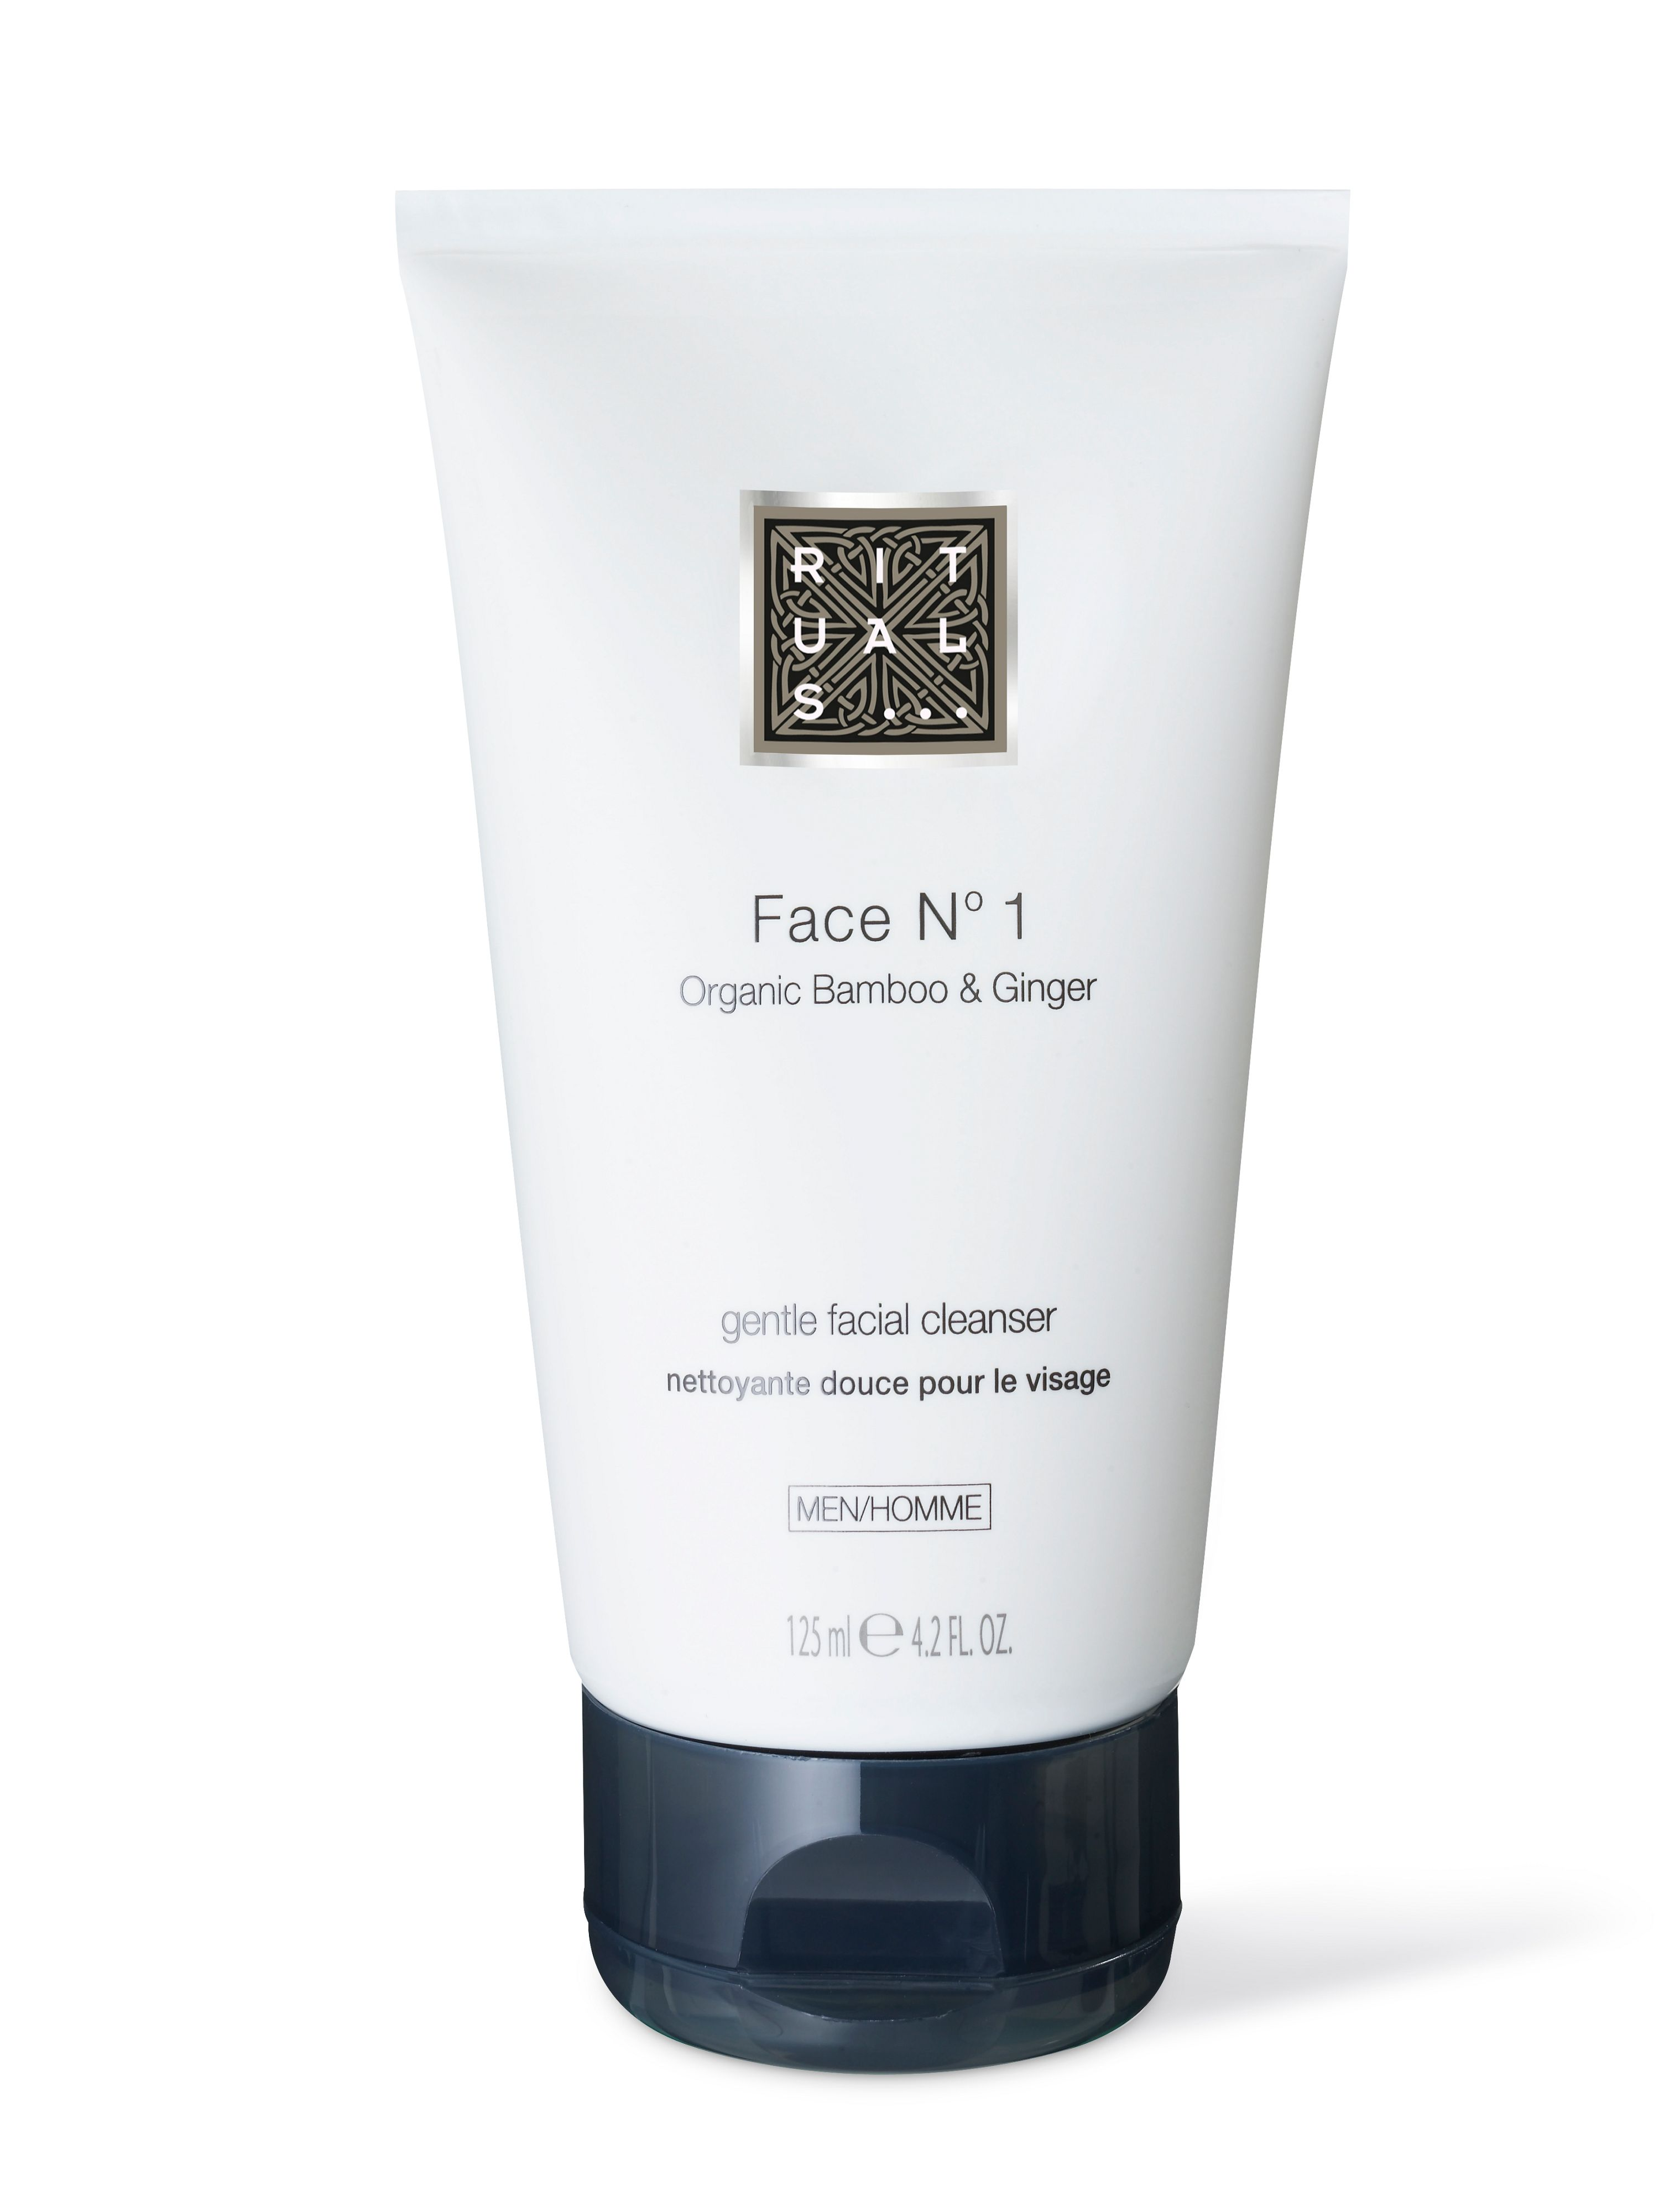 Face No. 1 Gentle Facial Cleanser